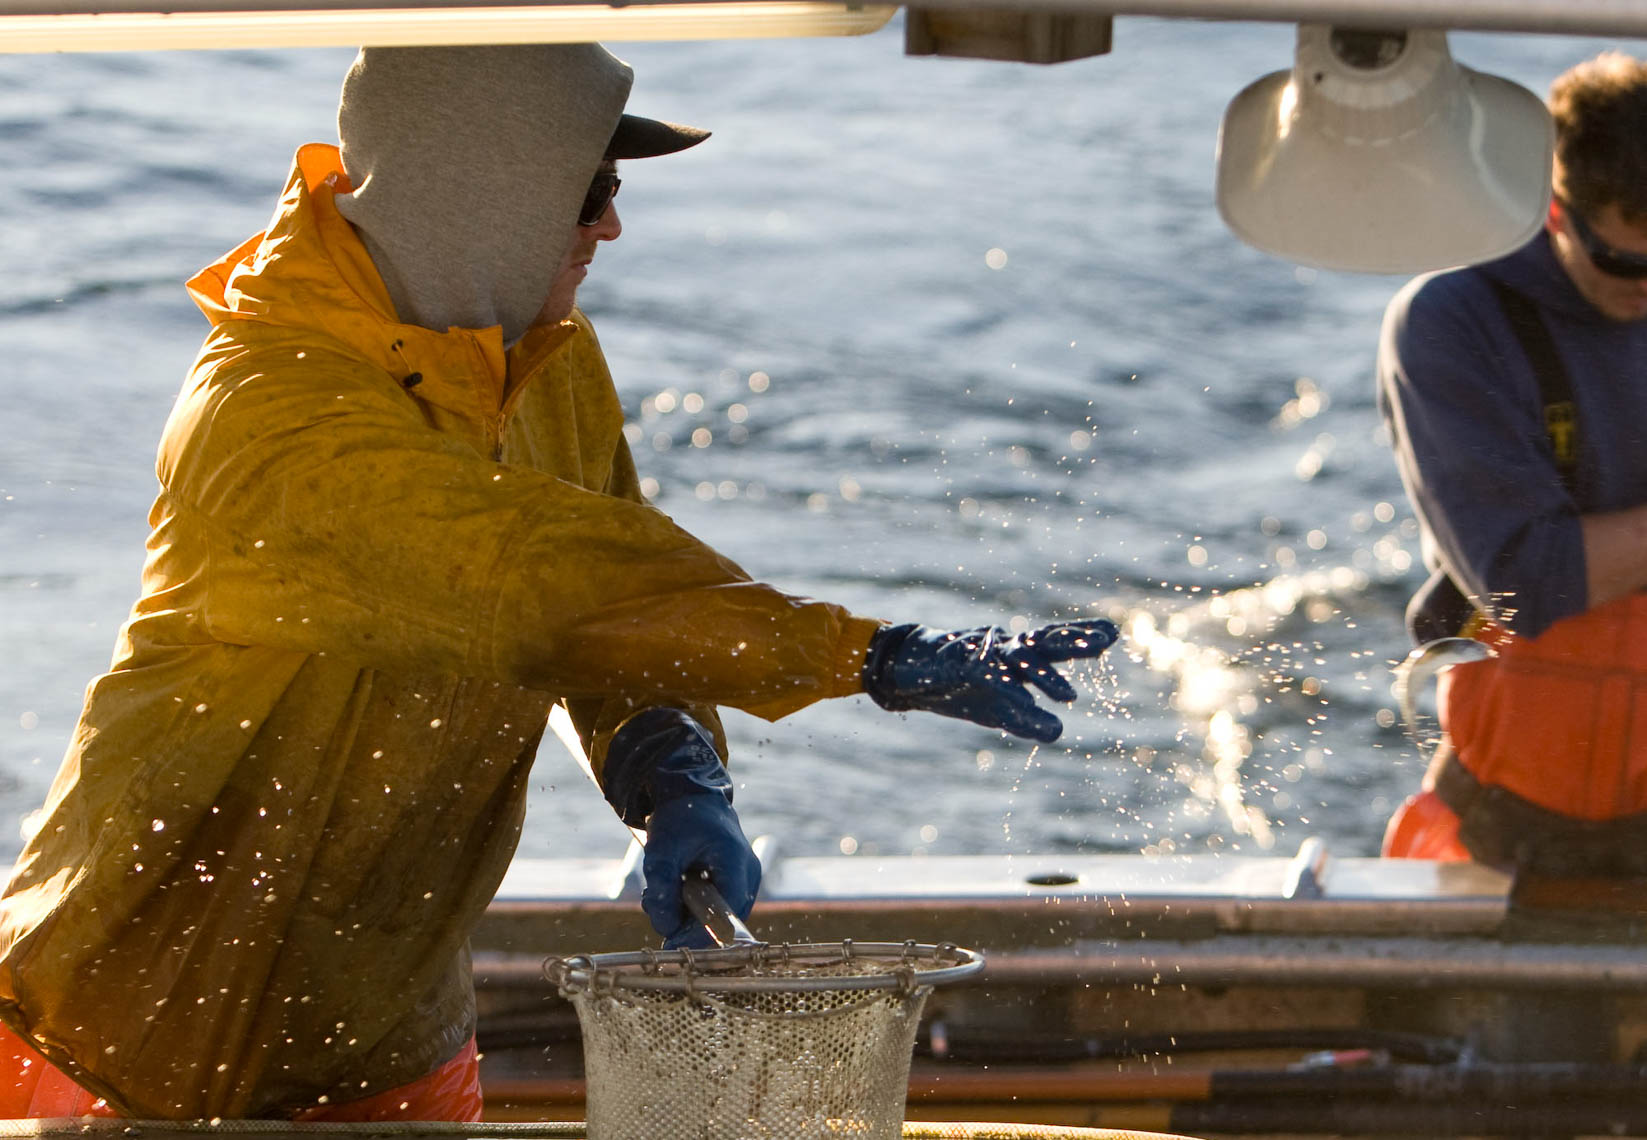 Crewman Throws Anchovies to Bait Albacore Tuna